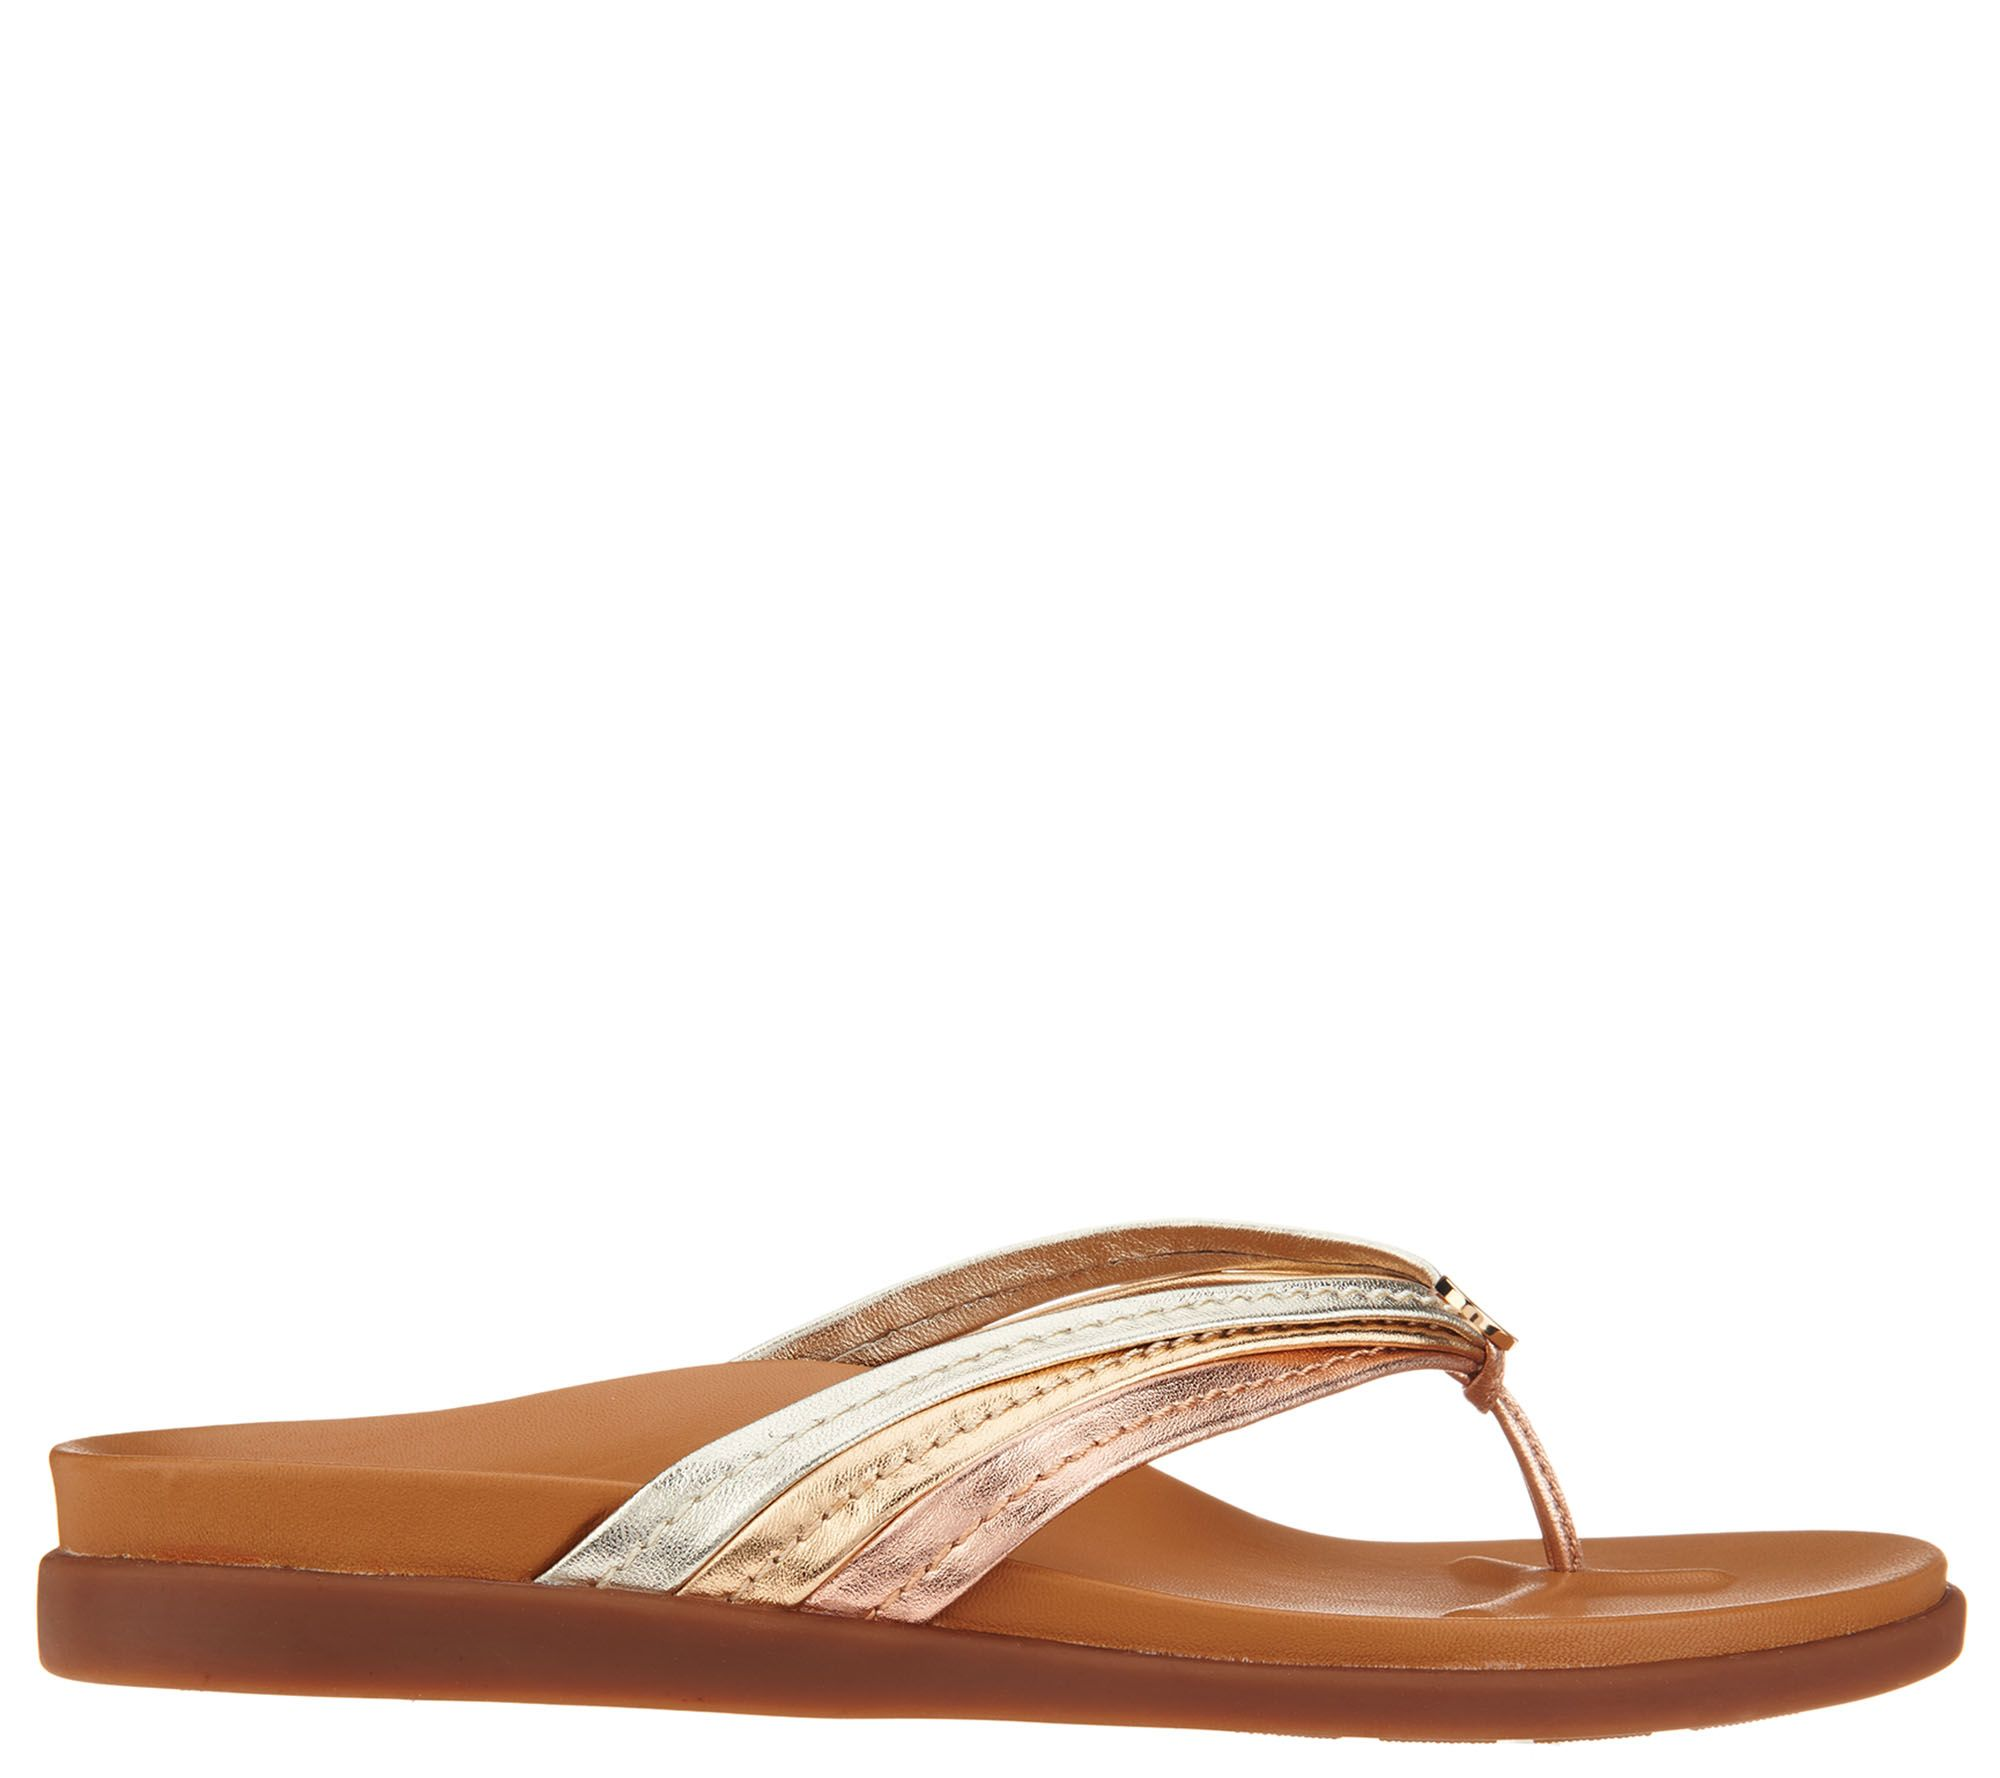 926bc0e83eafc Vionic Leather Triple-Strap Thong Sandals - Catalina - Page 1 — QVC.com